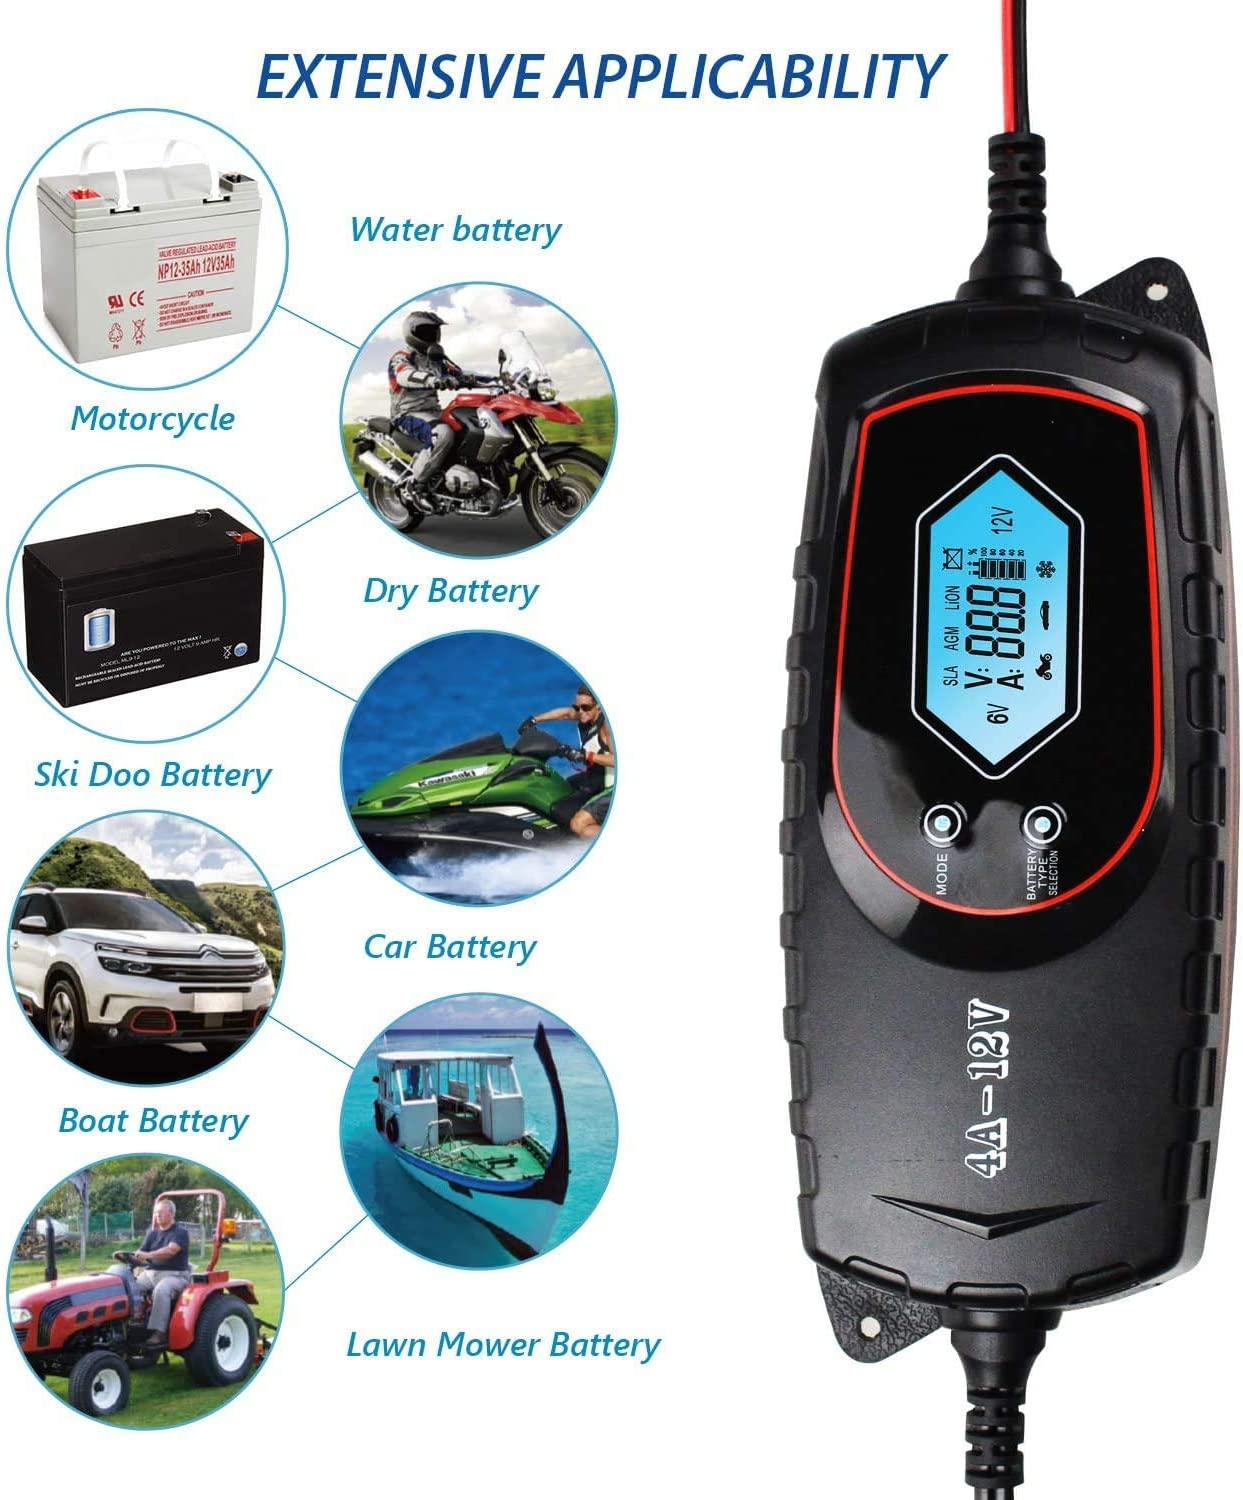 ATV and More Truck 6//12V Trickle Charger for Car GOOSUO Smart Battery Maintainer car battery charger//jump starter SUV RV Lawn Mower Boat Motorcycle